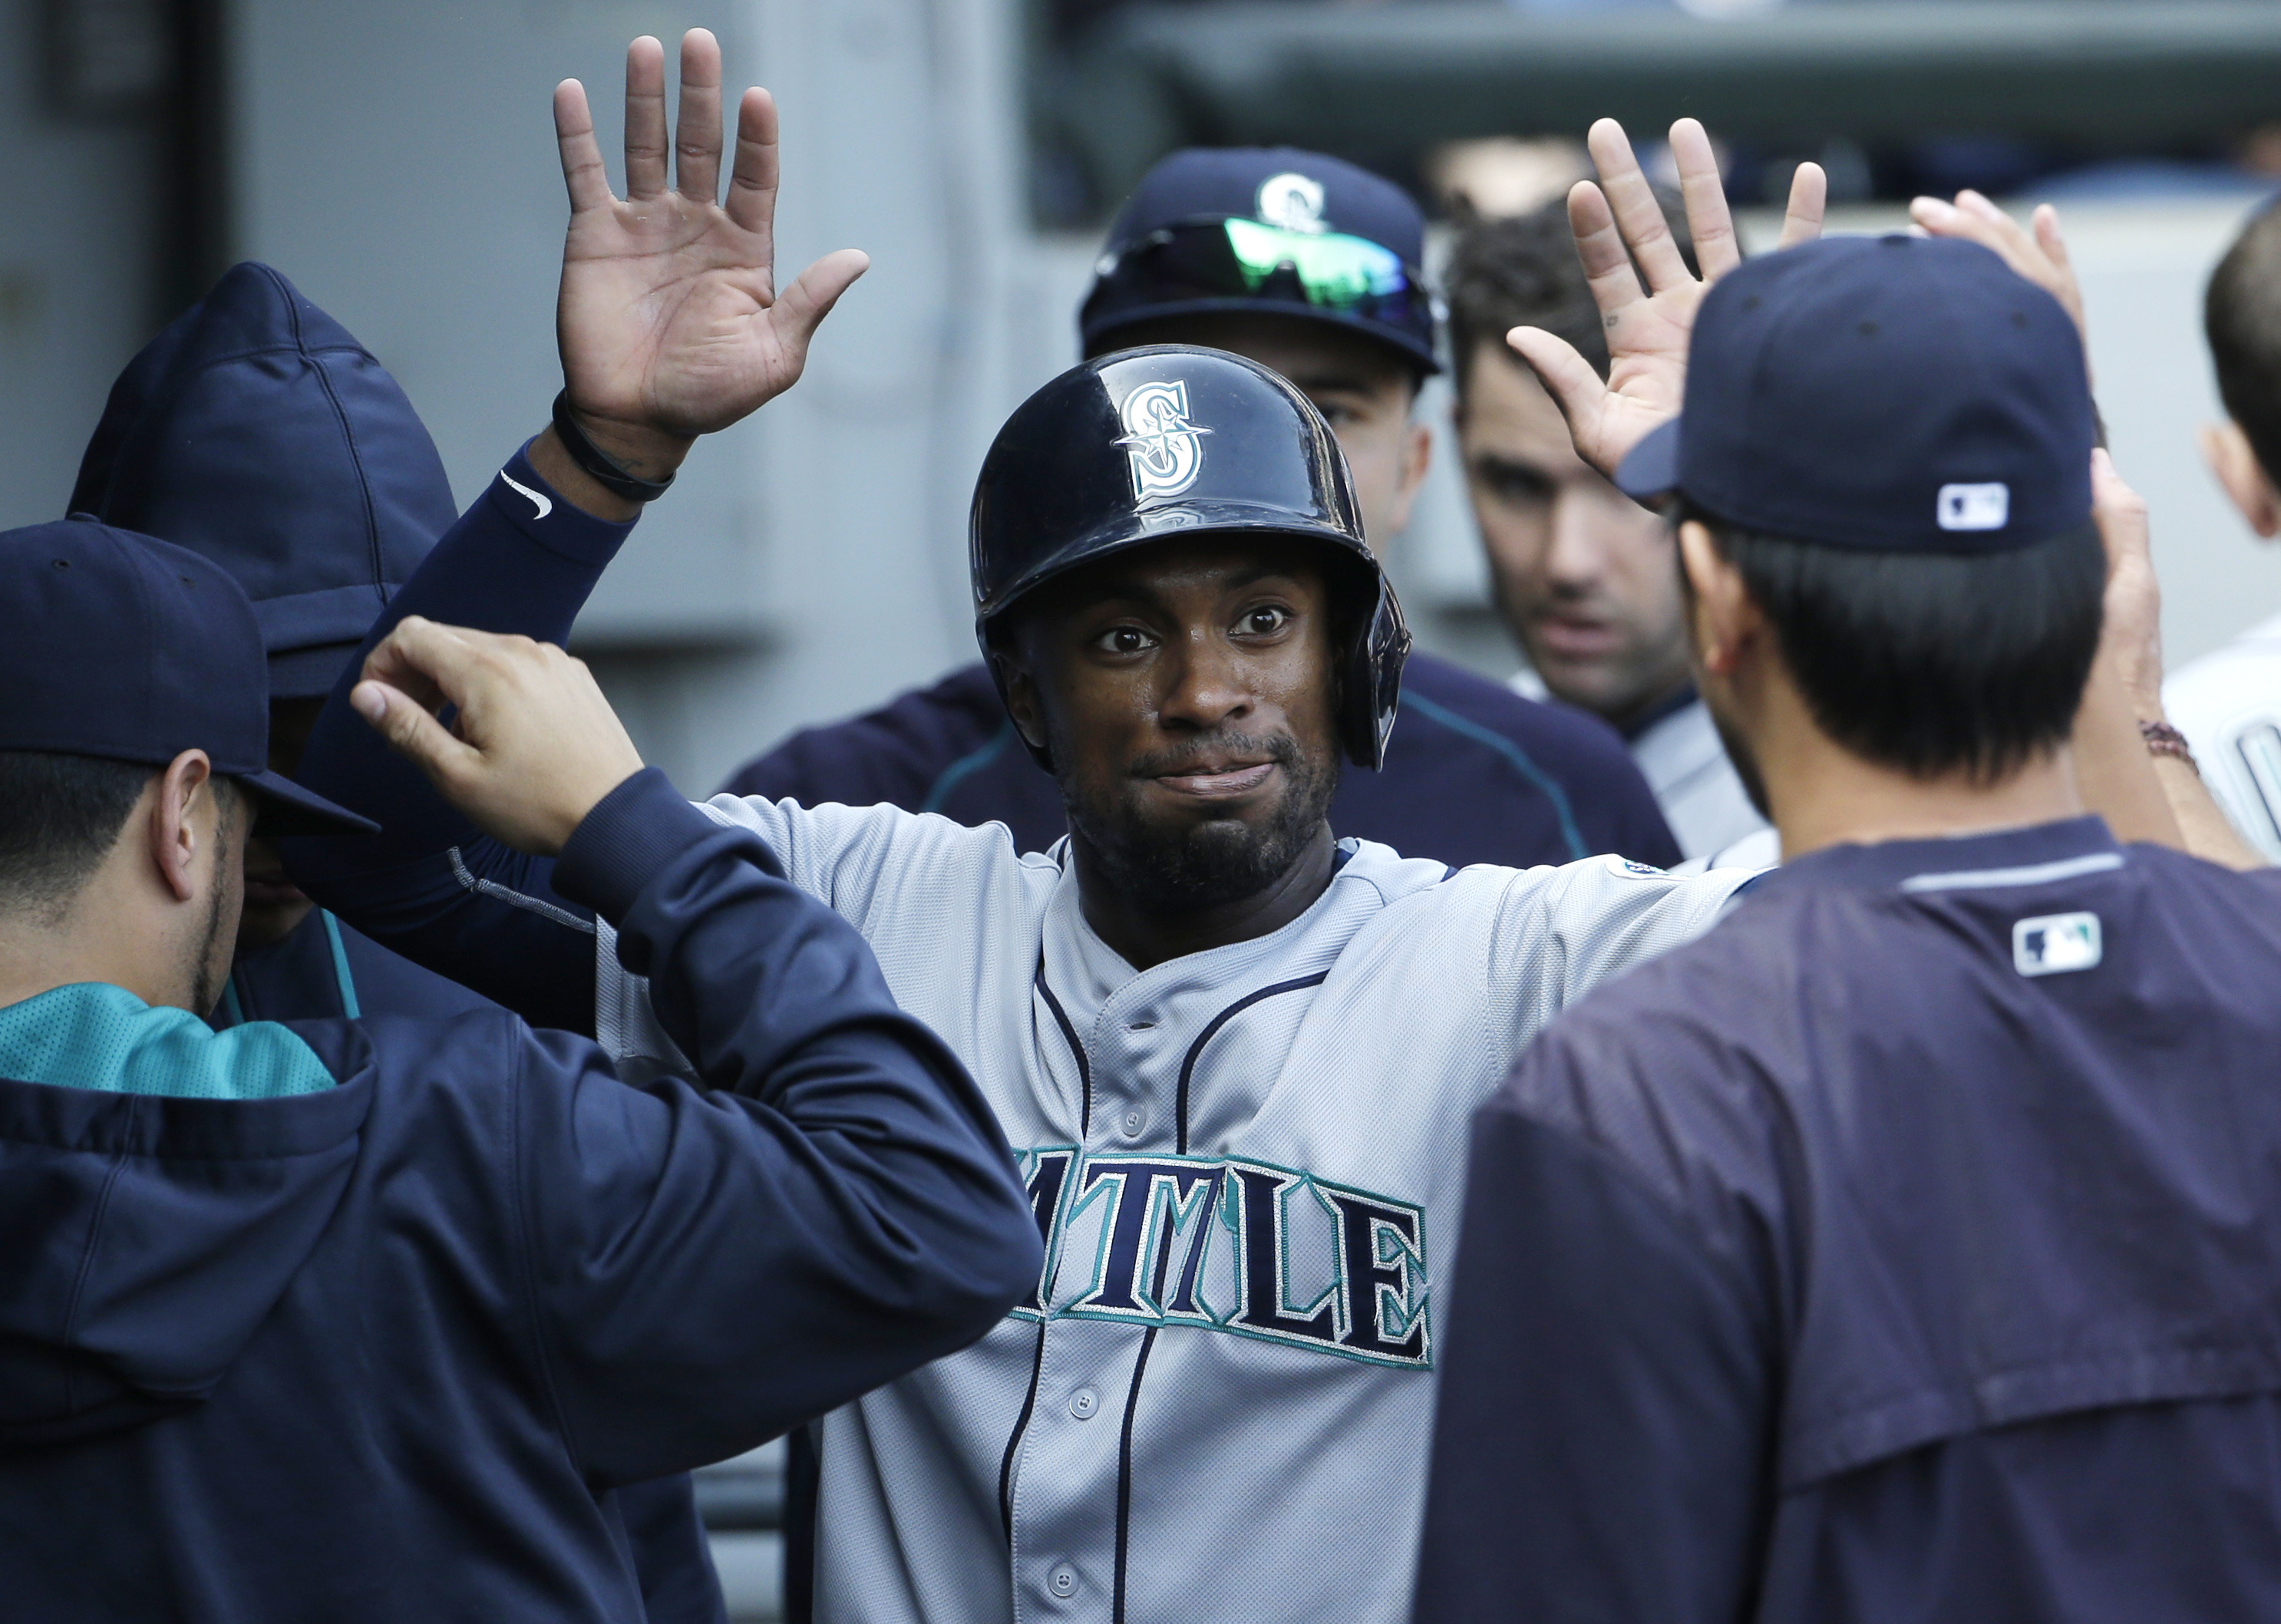 Seattle Mariners' Austin Jackson celebrates with teammates after scoring on a single by Kyle Seager during the eighth inning of a baseball game against the Chicago White Sox, Sunday, Aug. 30, 2015, in Chicago. (AP Photo/Nam Y. Huh)